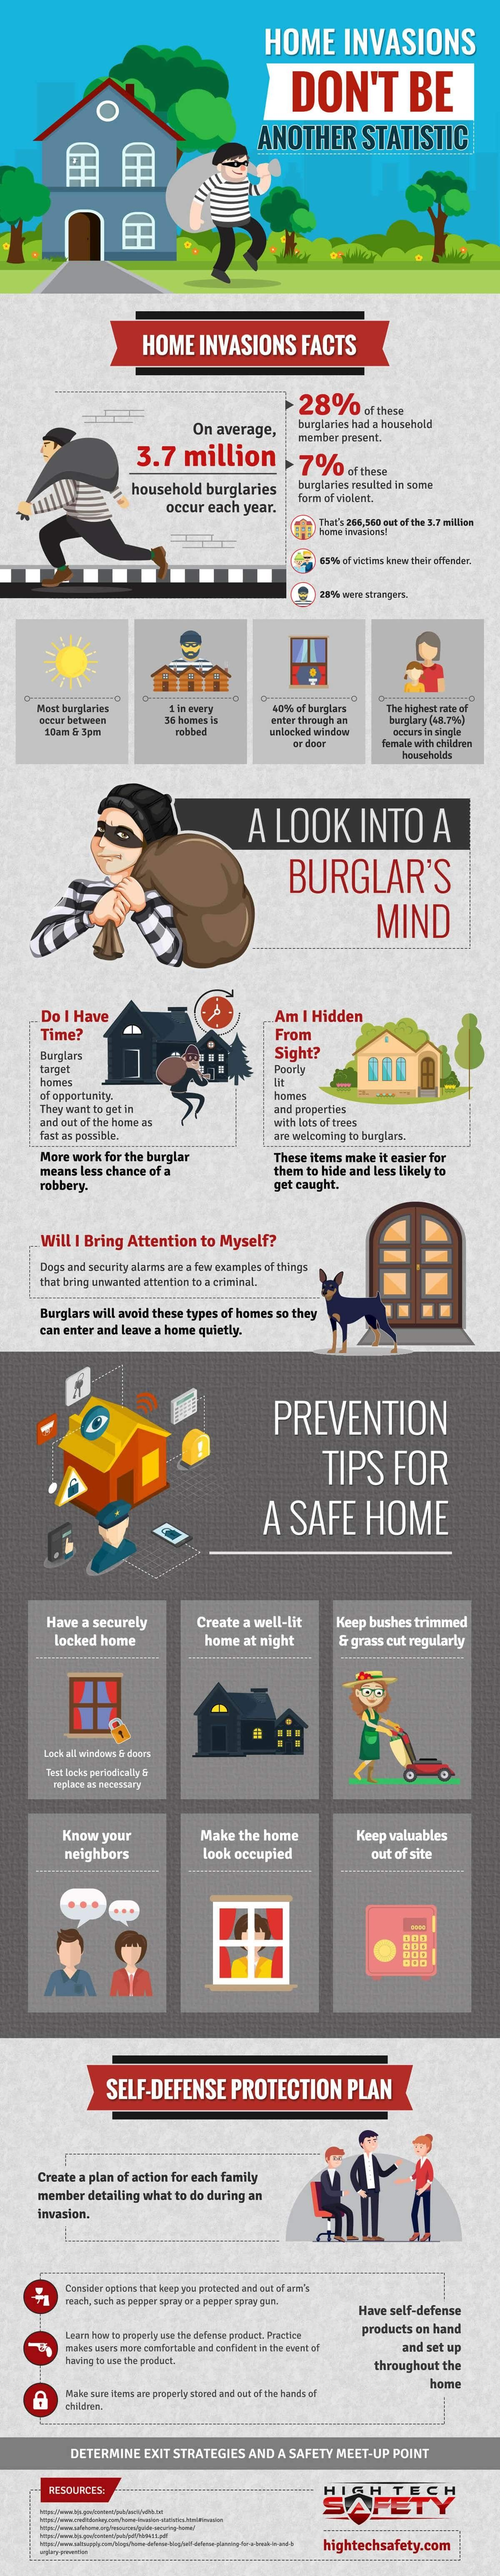 Home Invasions Don T Be Another Statistic Infographic